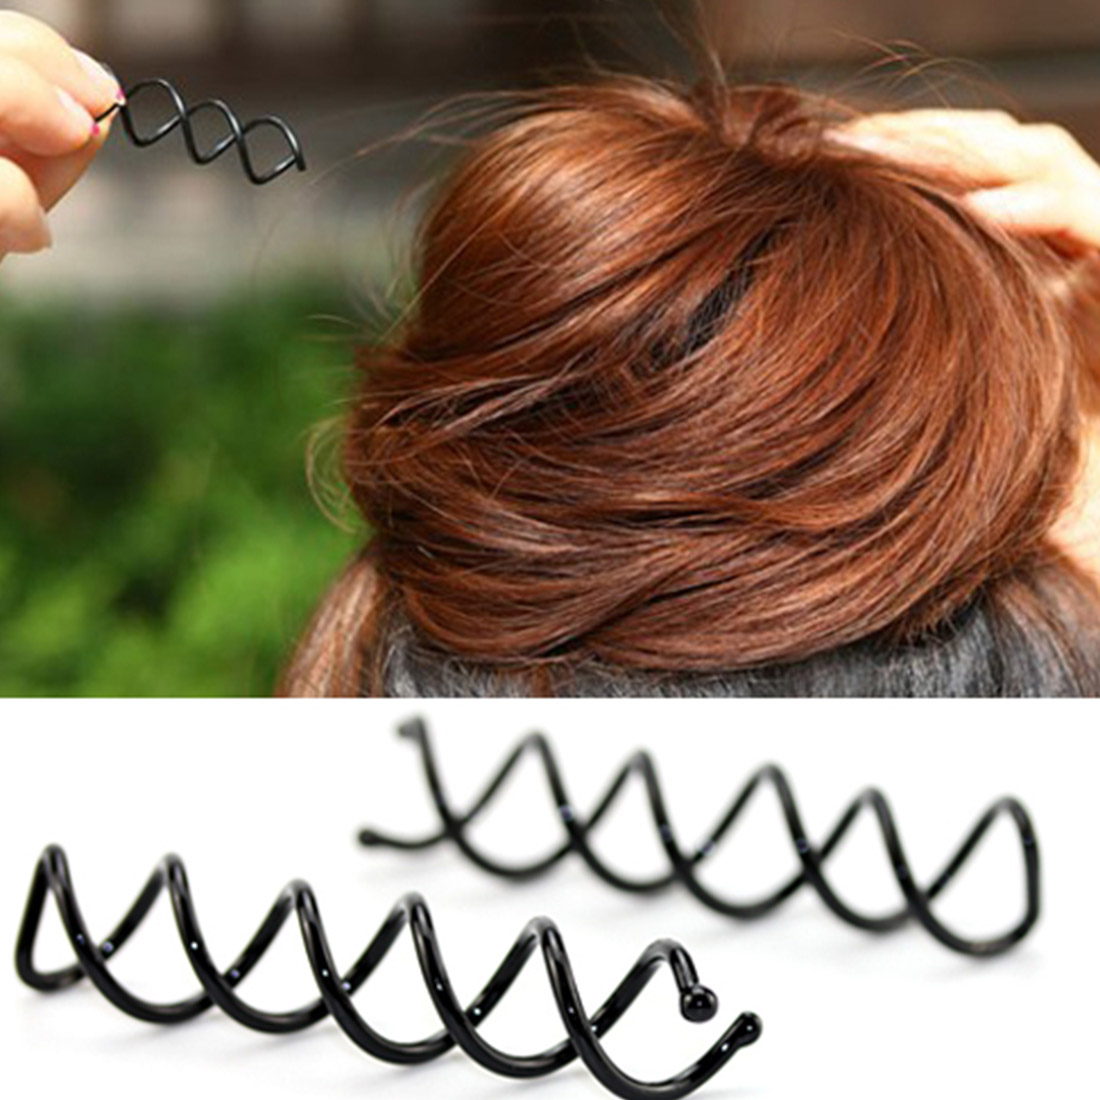 10pcs Spiral Spin Screw Pin Hair Clip Twist Barrette Black New Hairpins Hair Band Accessories Warm And Windproof